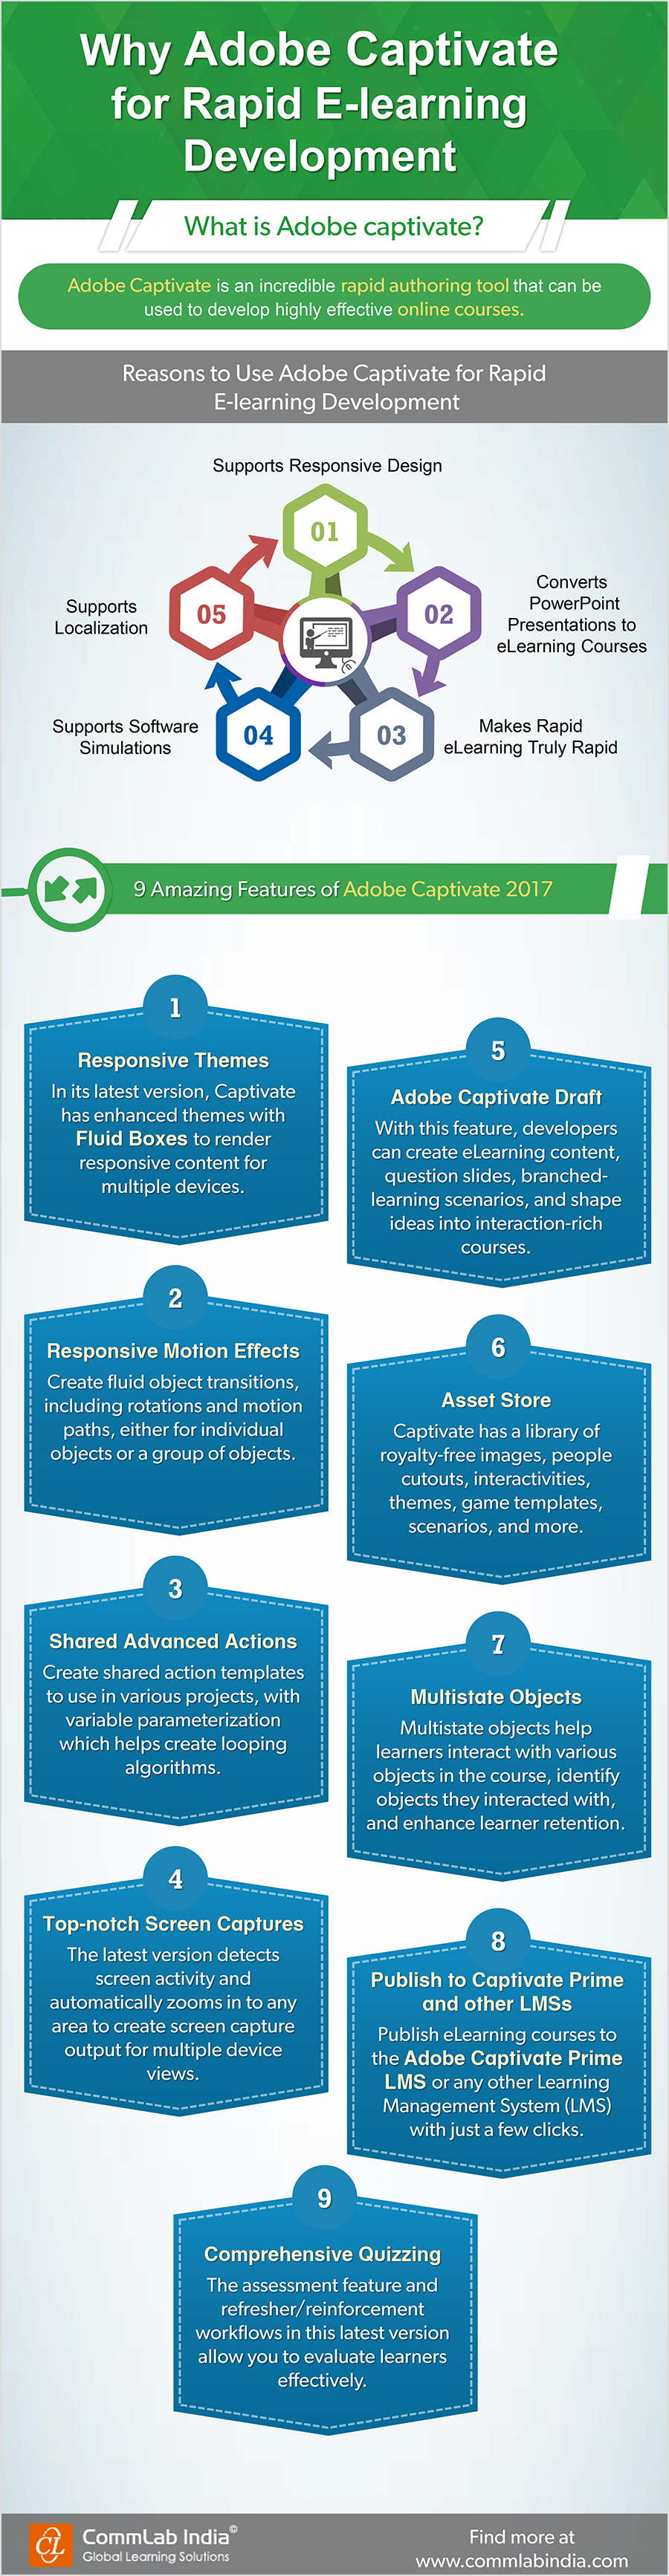 Why Adobe captivate for Rapid E-learning Development [Infographic]